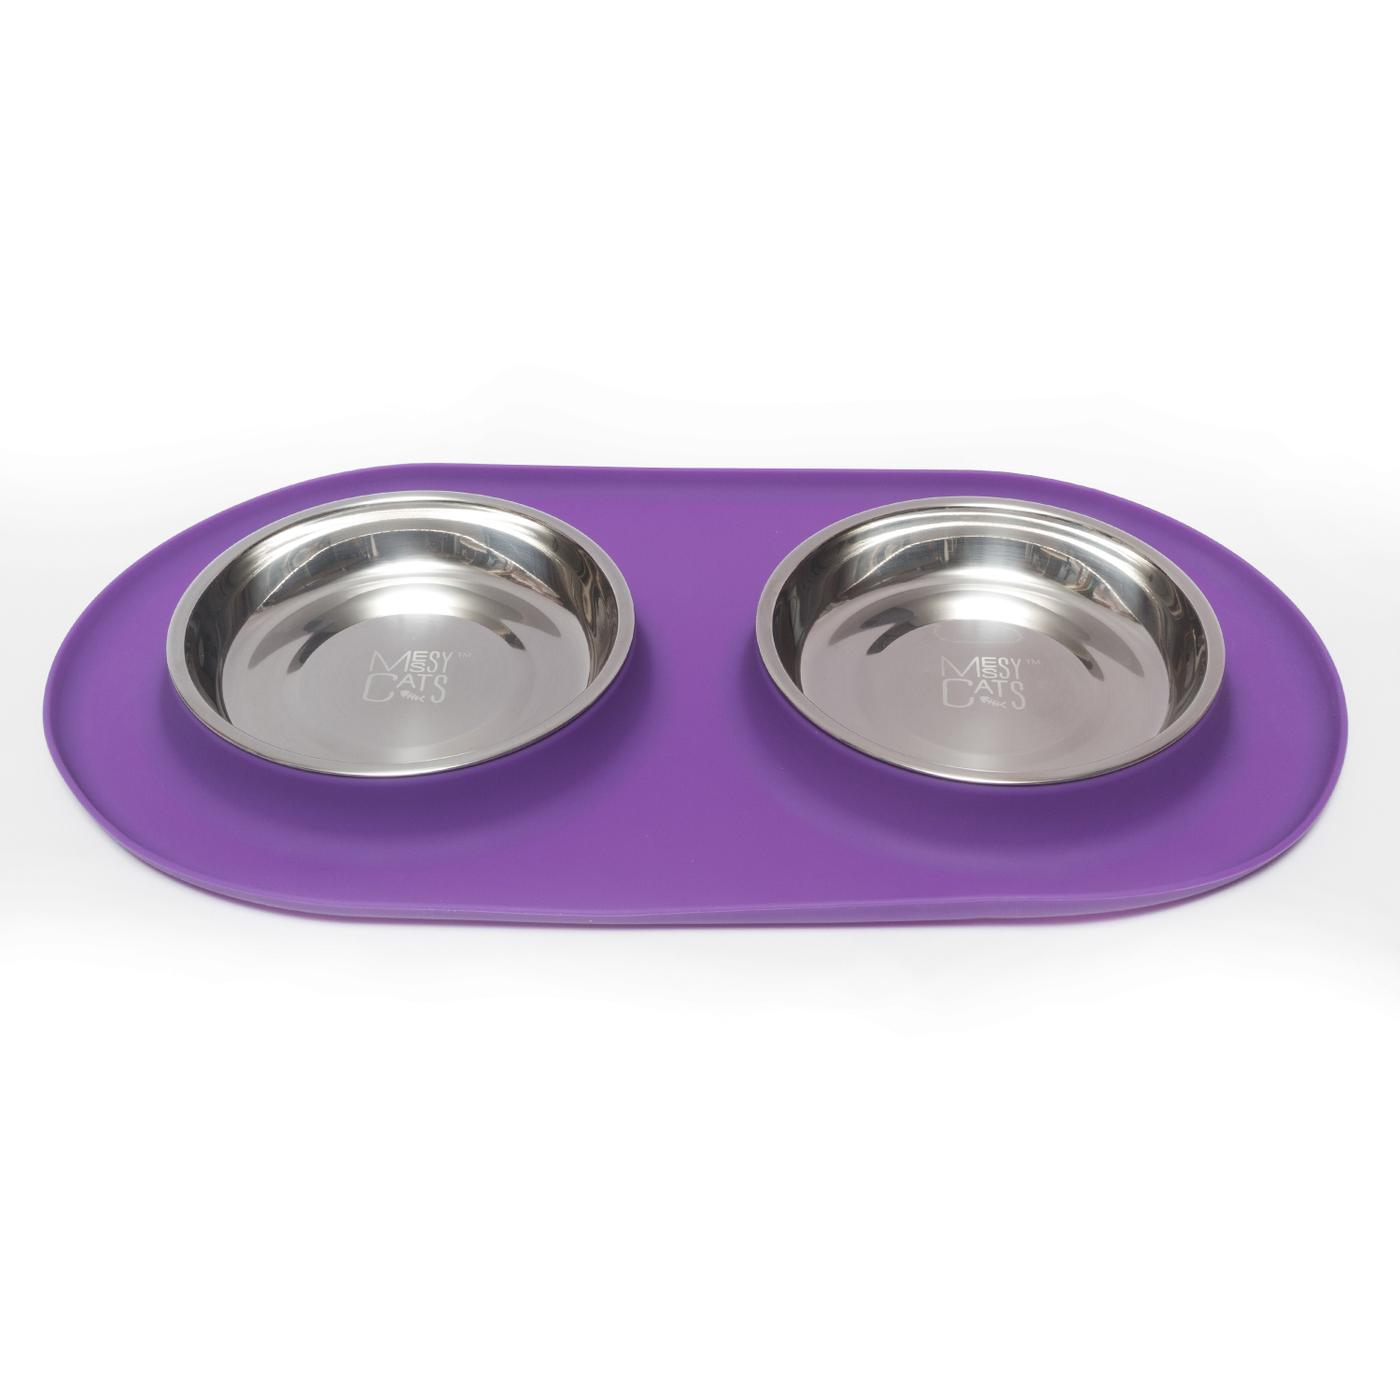 Messy Cats Stainless Steel Cat Double Feeder with Non-Slip Silicone Base Cat Bowl, Purple, Medium